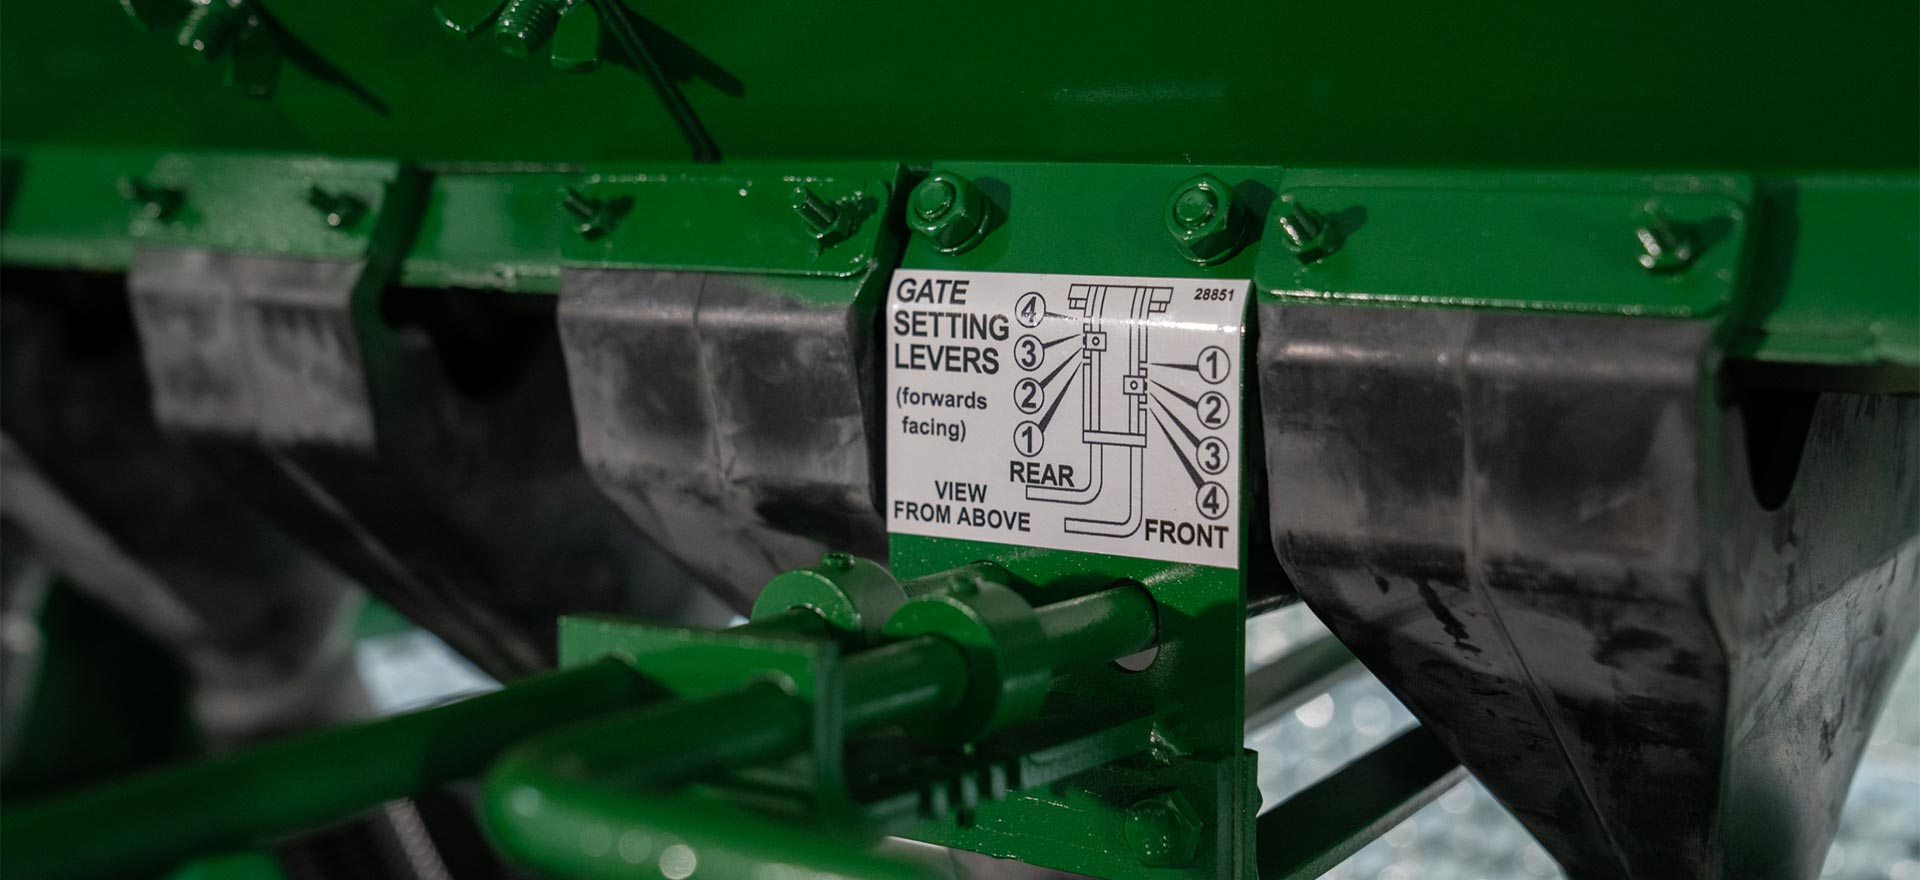 Pasture Renovation Drill gate setting levers